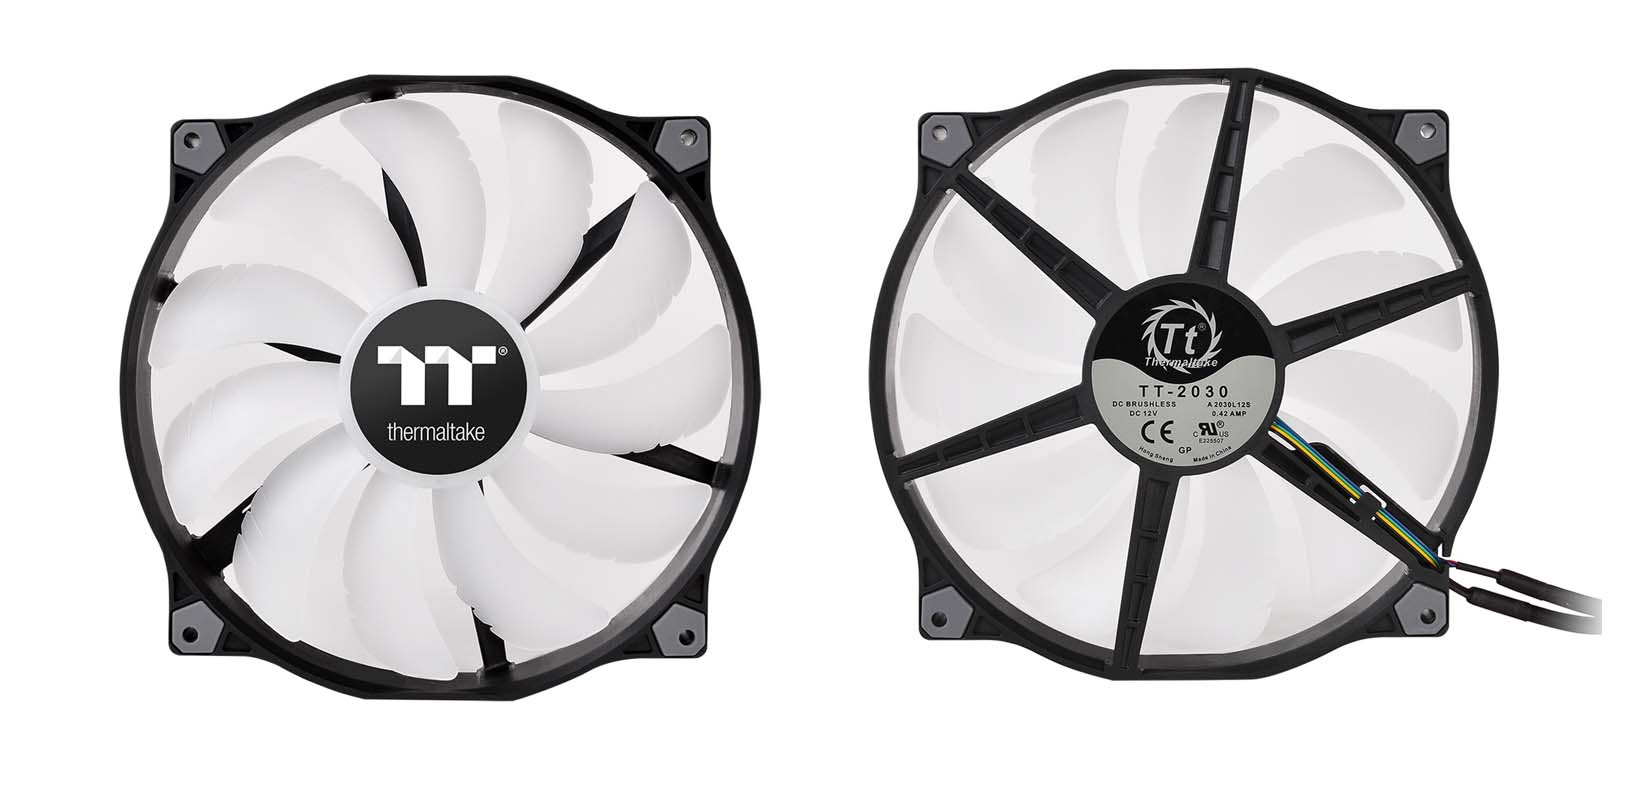 thermaltake_pure_20_argb_case_fan_tt_premium_edition_noled.jpg